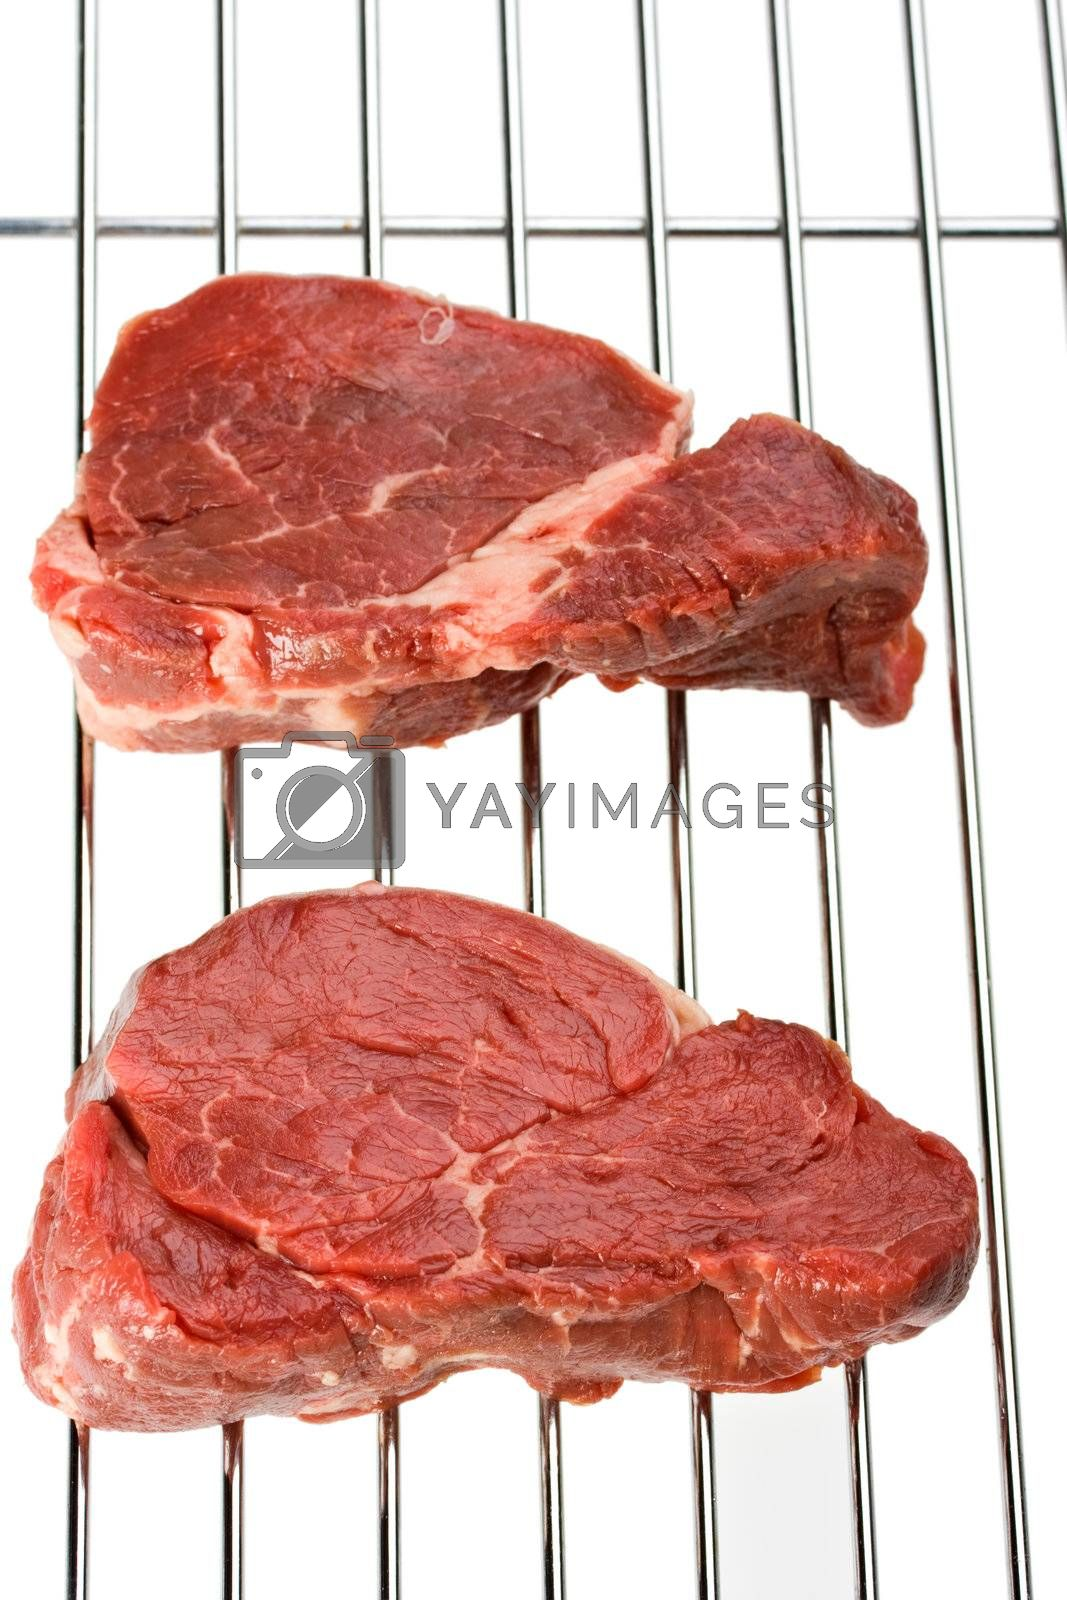 raw steak on a grill isolated on white